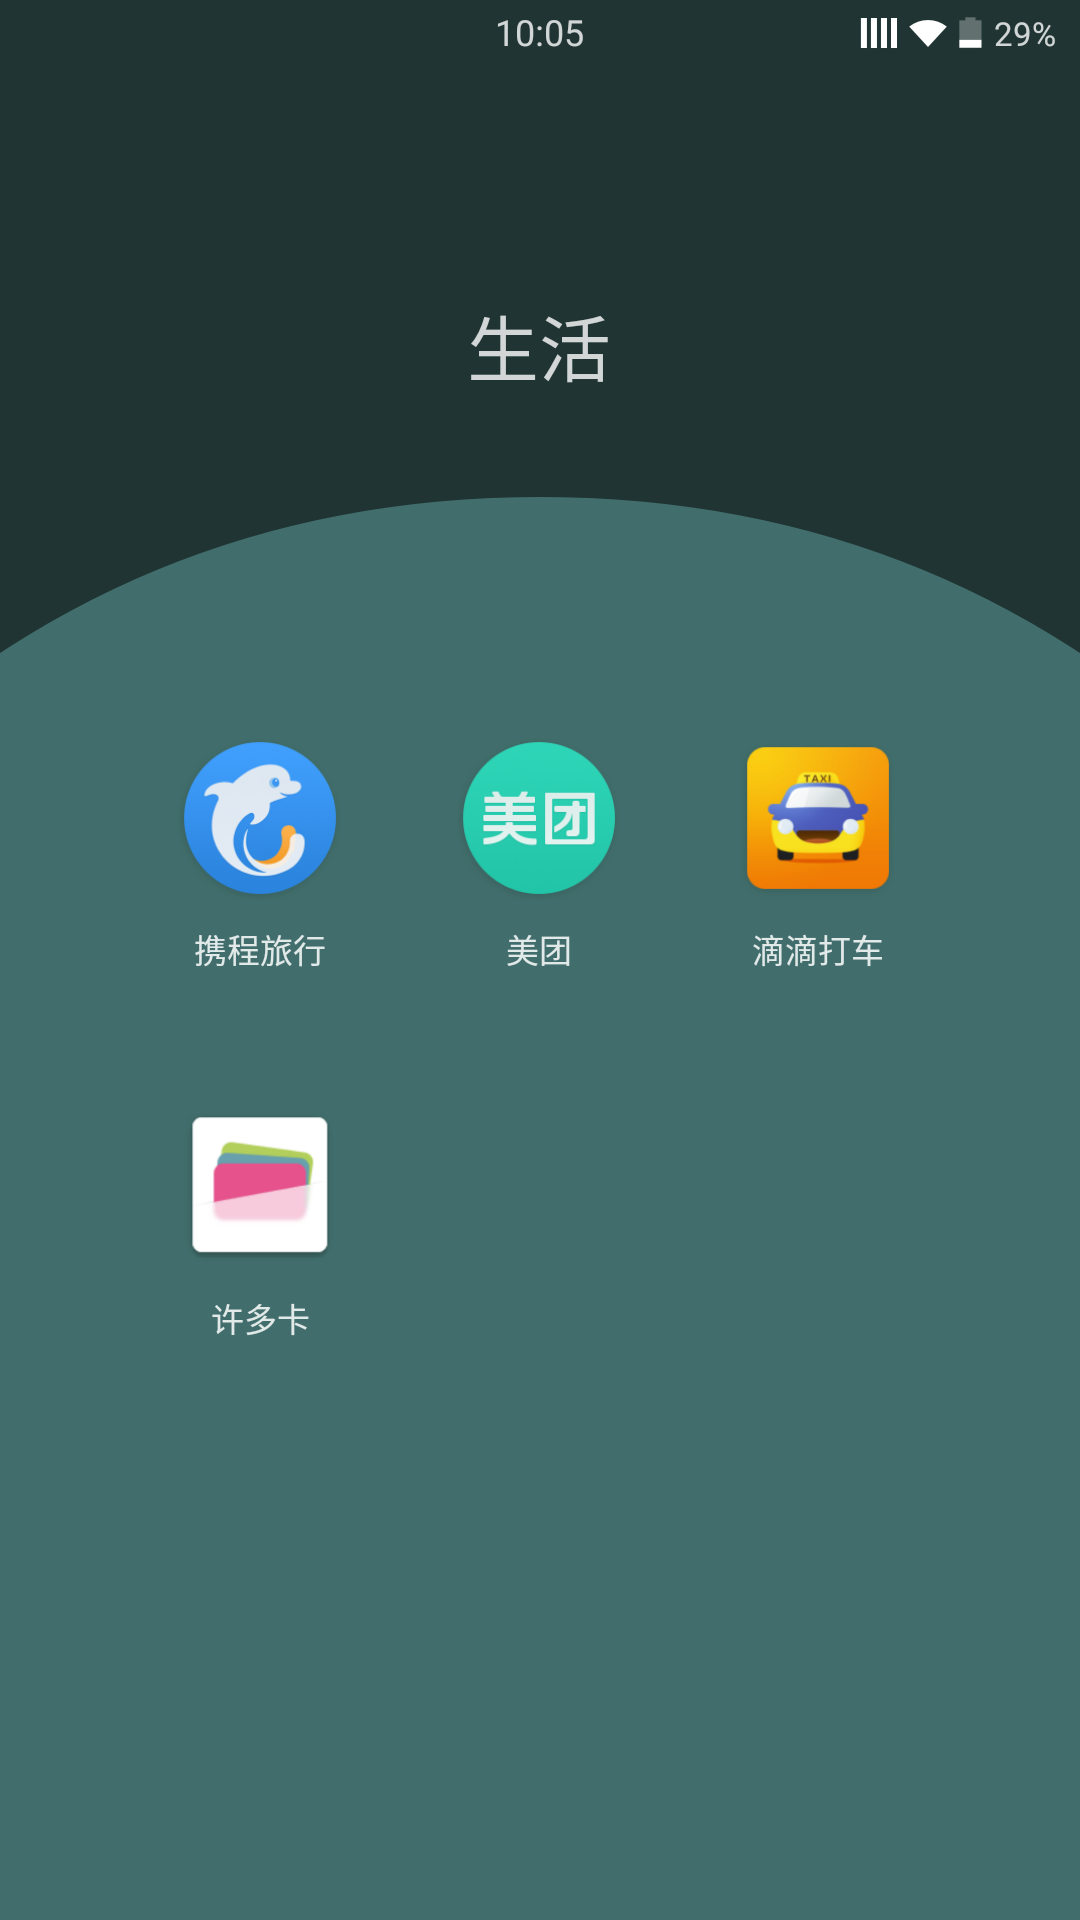 Screenshot_2015-07-12-10-05-10.png